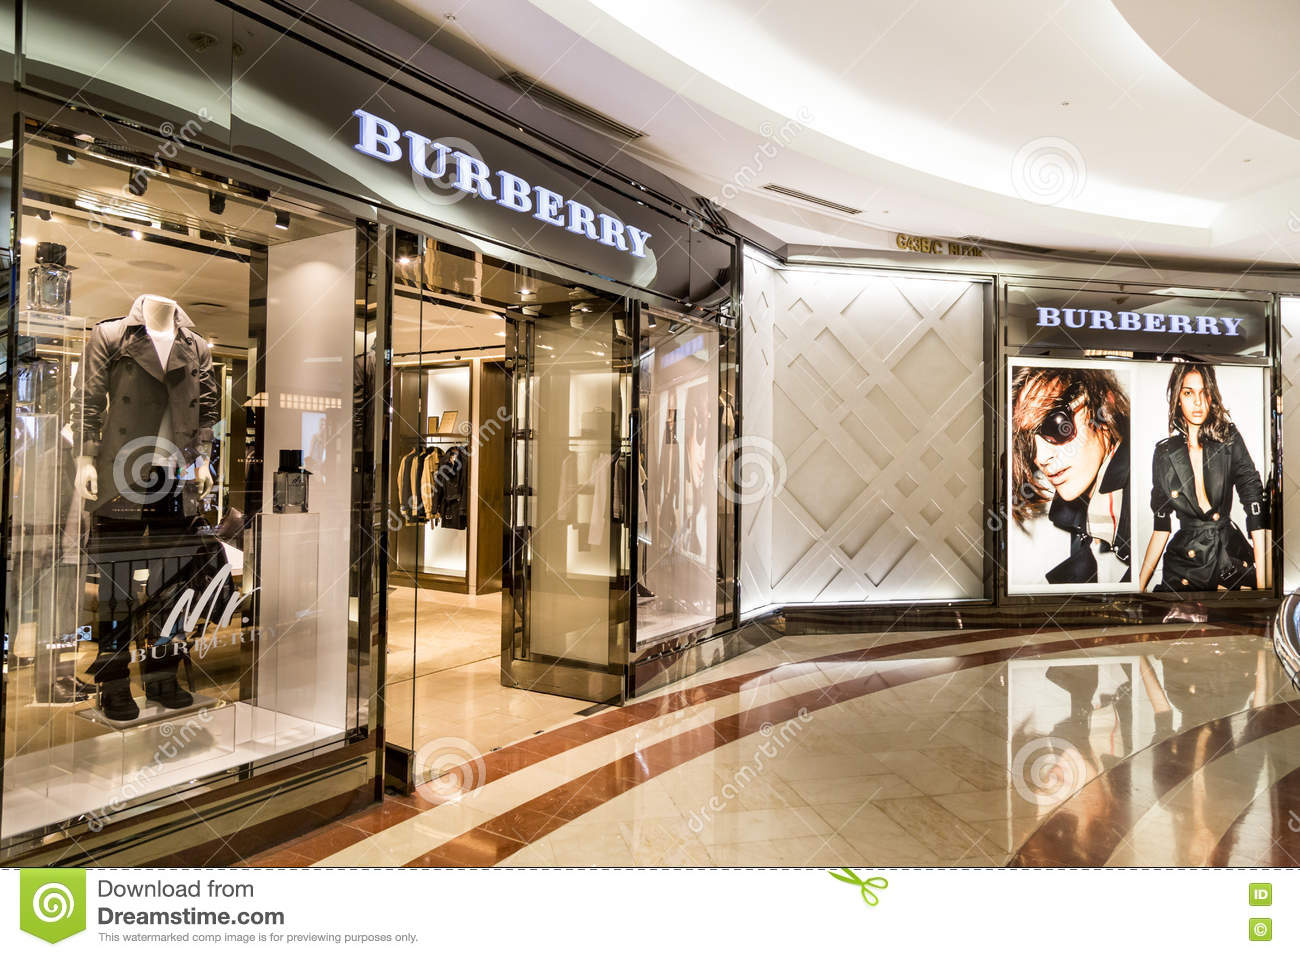 burrbery outlet qbu1  Retail outlet of Burberry in KLCC, Kuala Lumpur Editorial Stock Photo